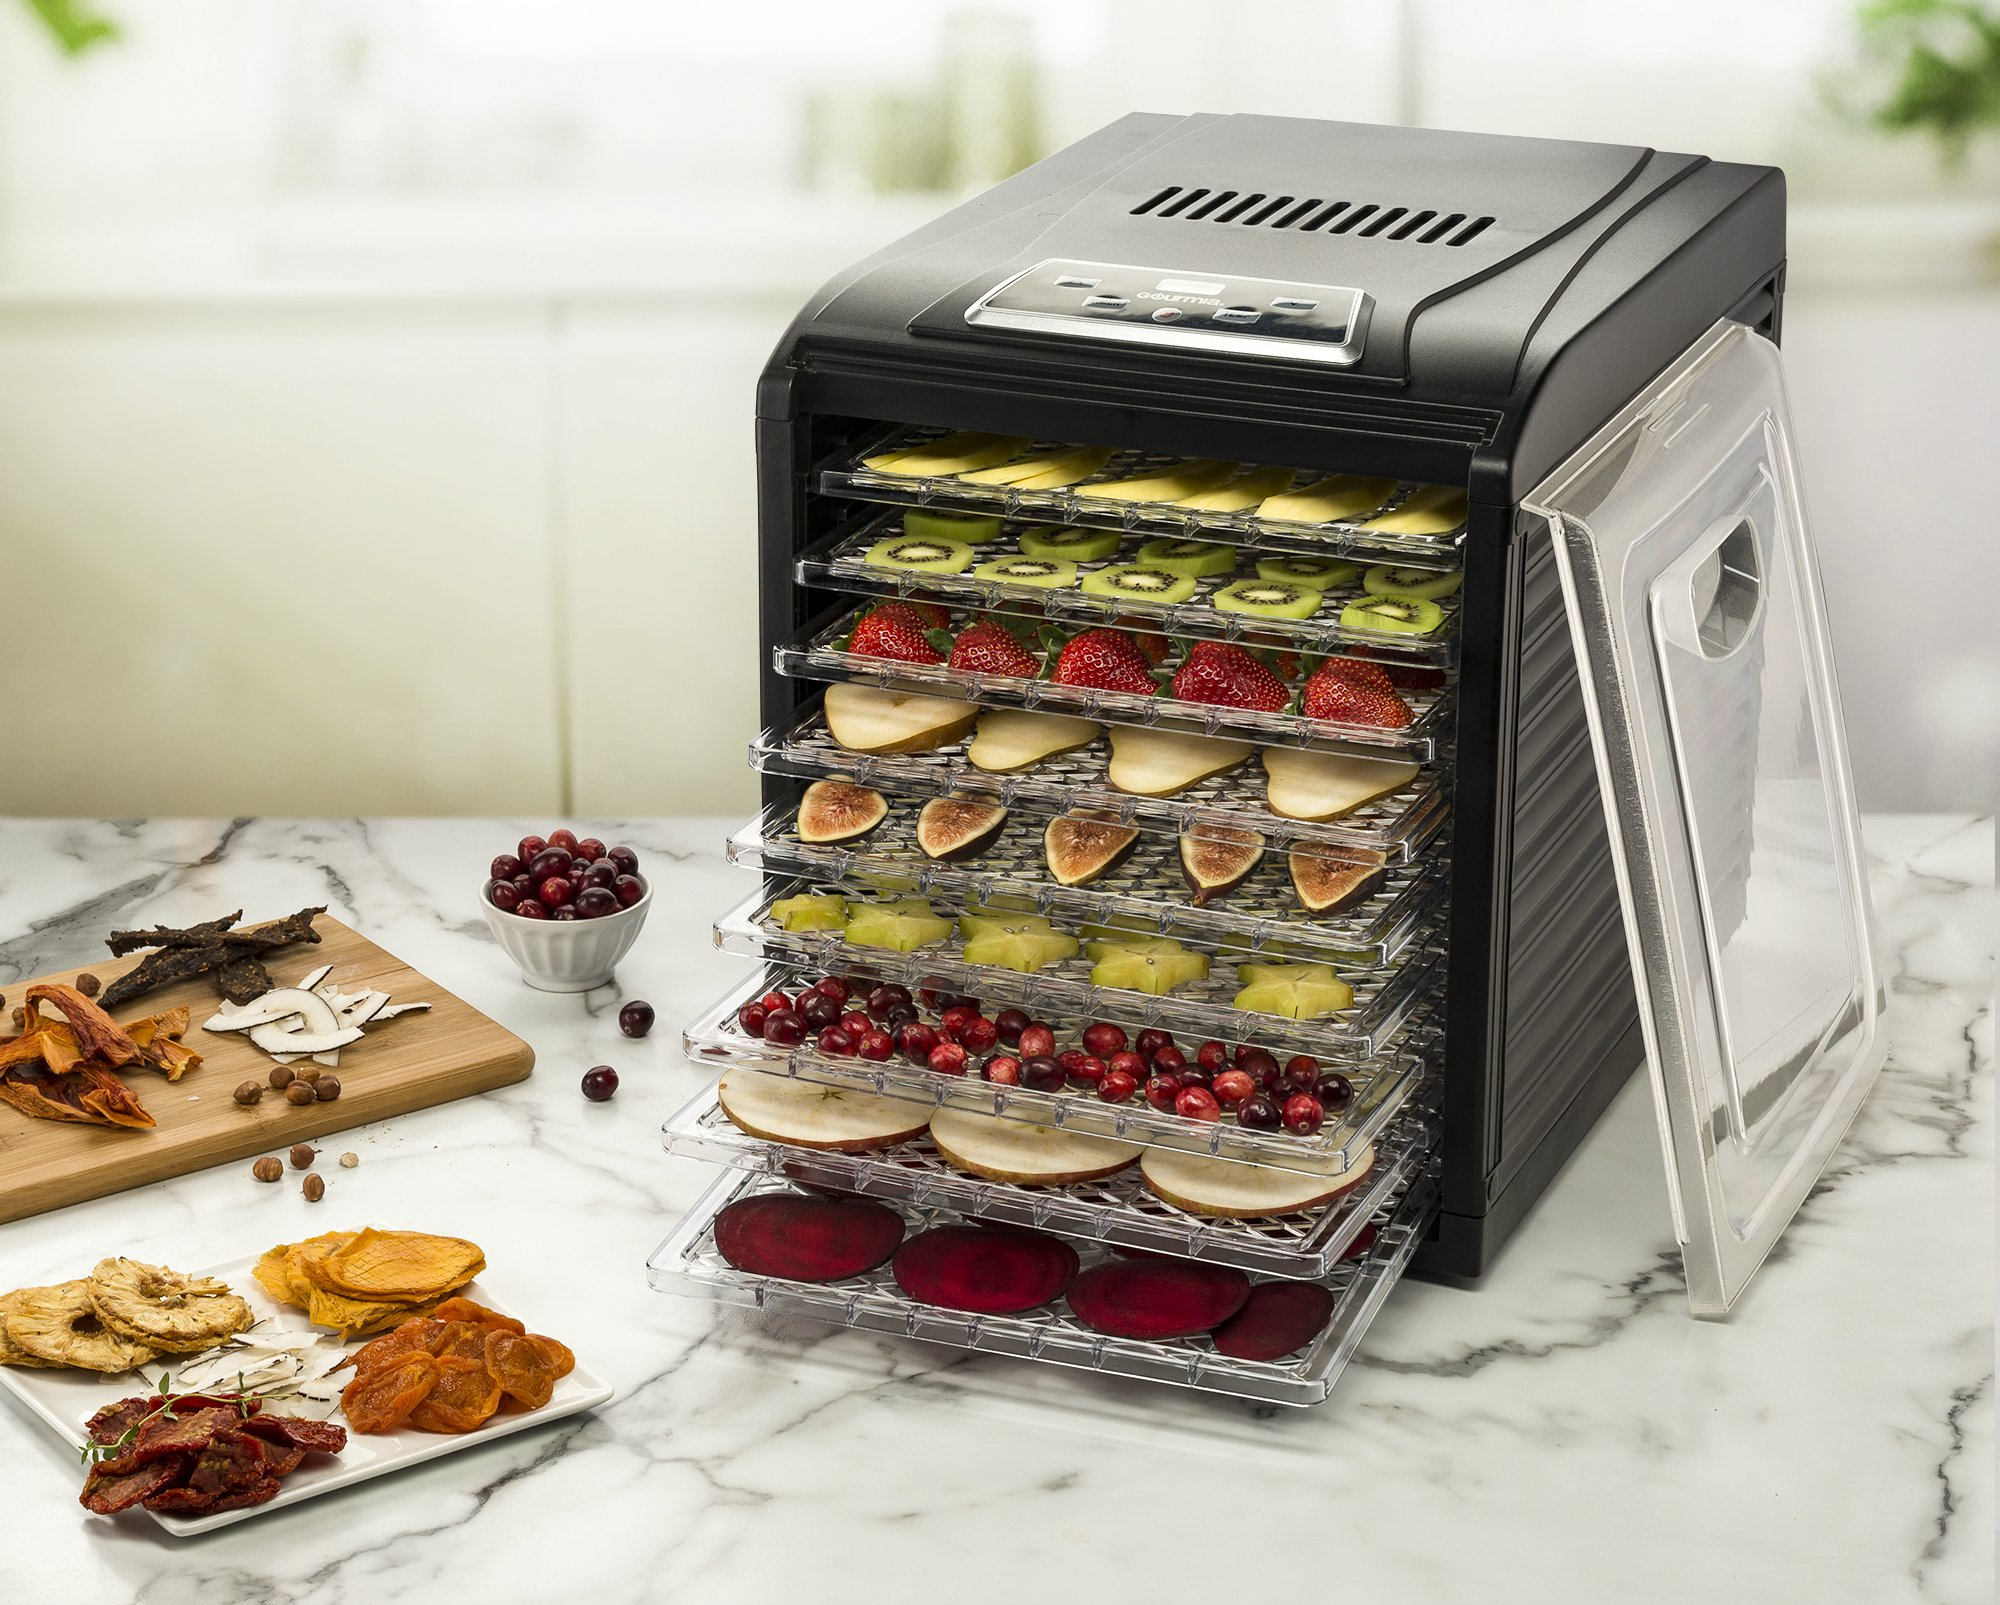 Gourmia GFD1950 Digital Food Dehydrator - 9 Drying Trays Plus Fruit Leather Tray - Digital Temperature Control - Transparent Window - Free recipe Book Included by Gourmia (Image #2)